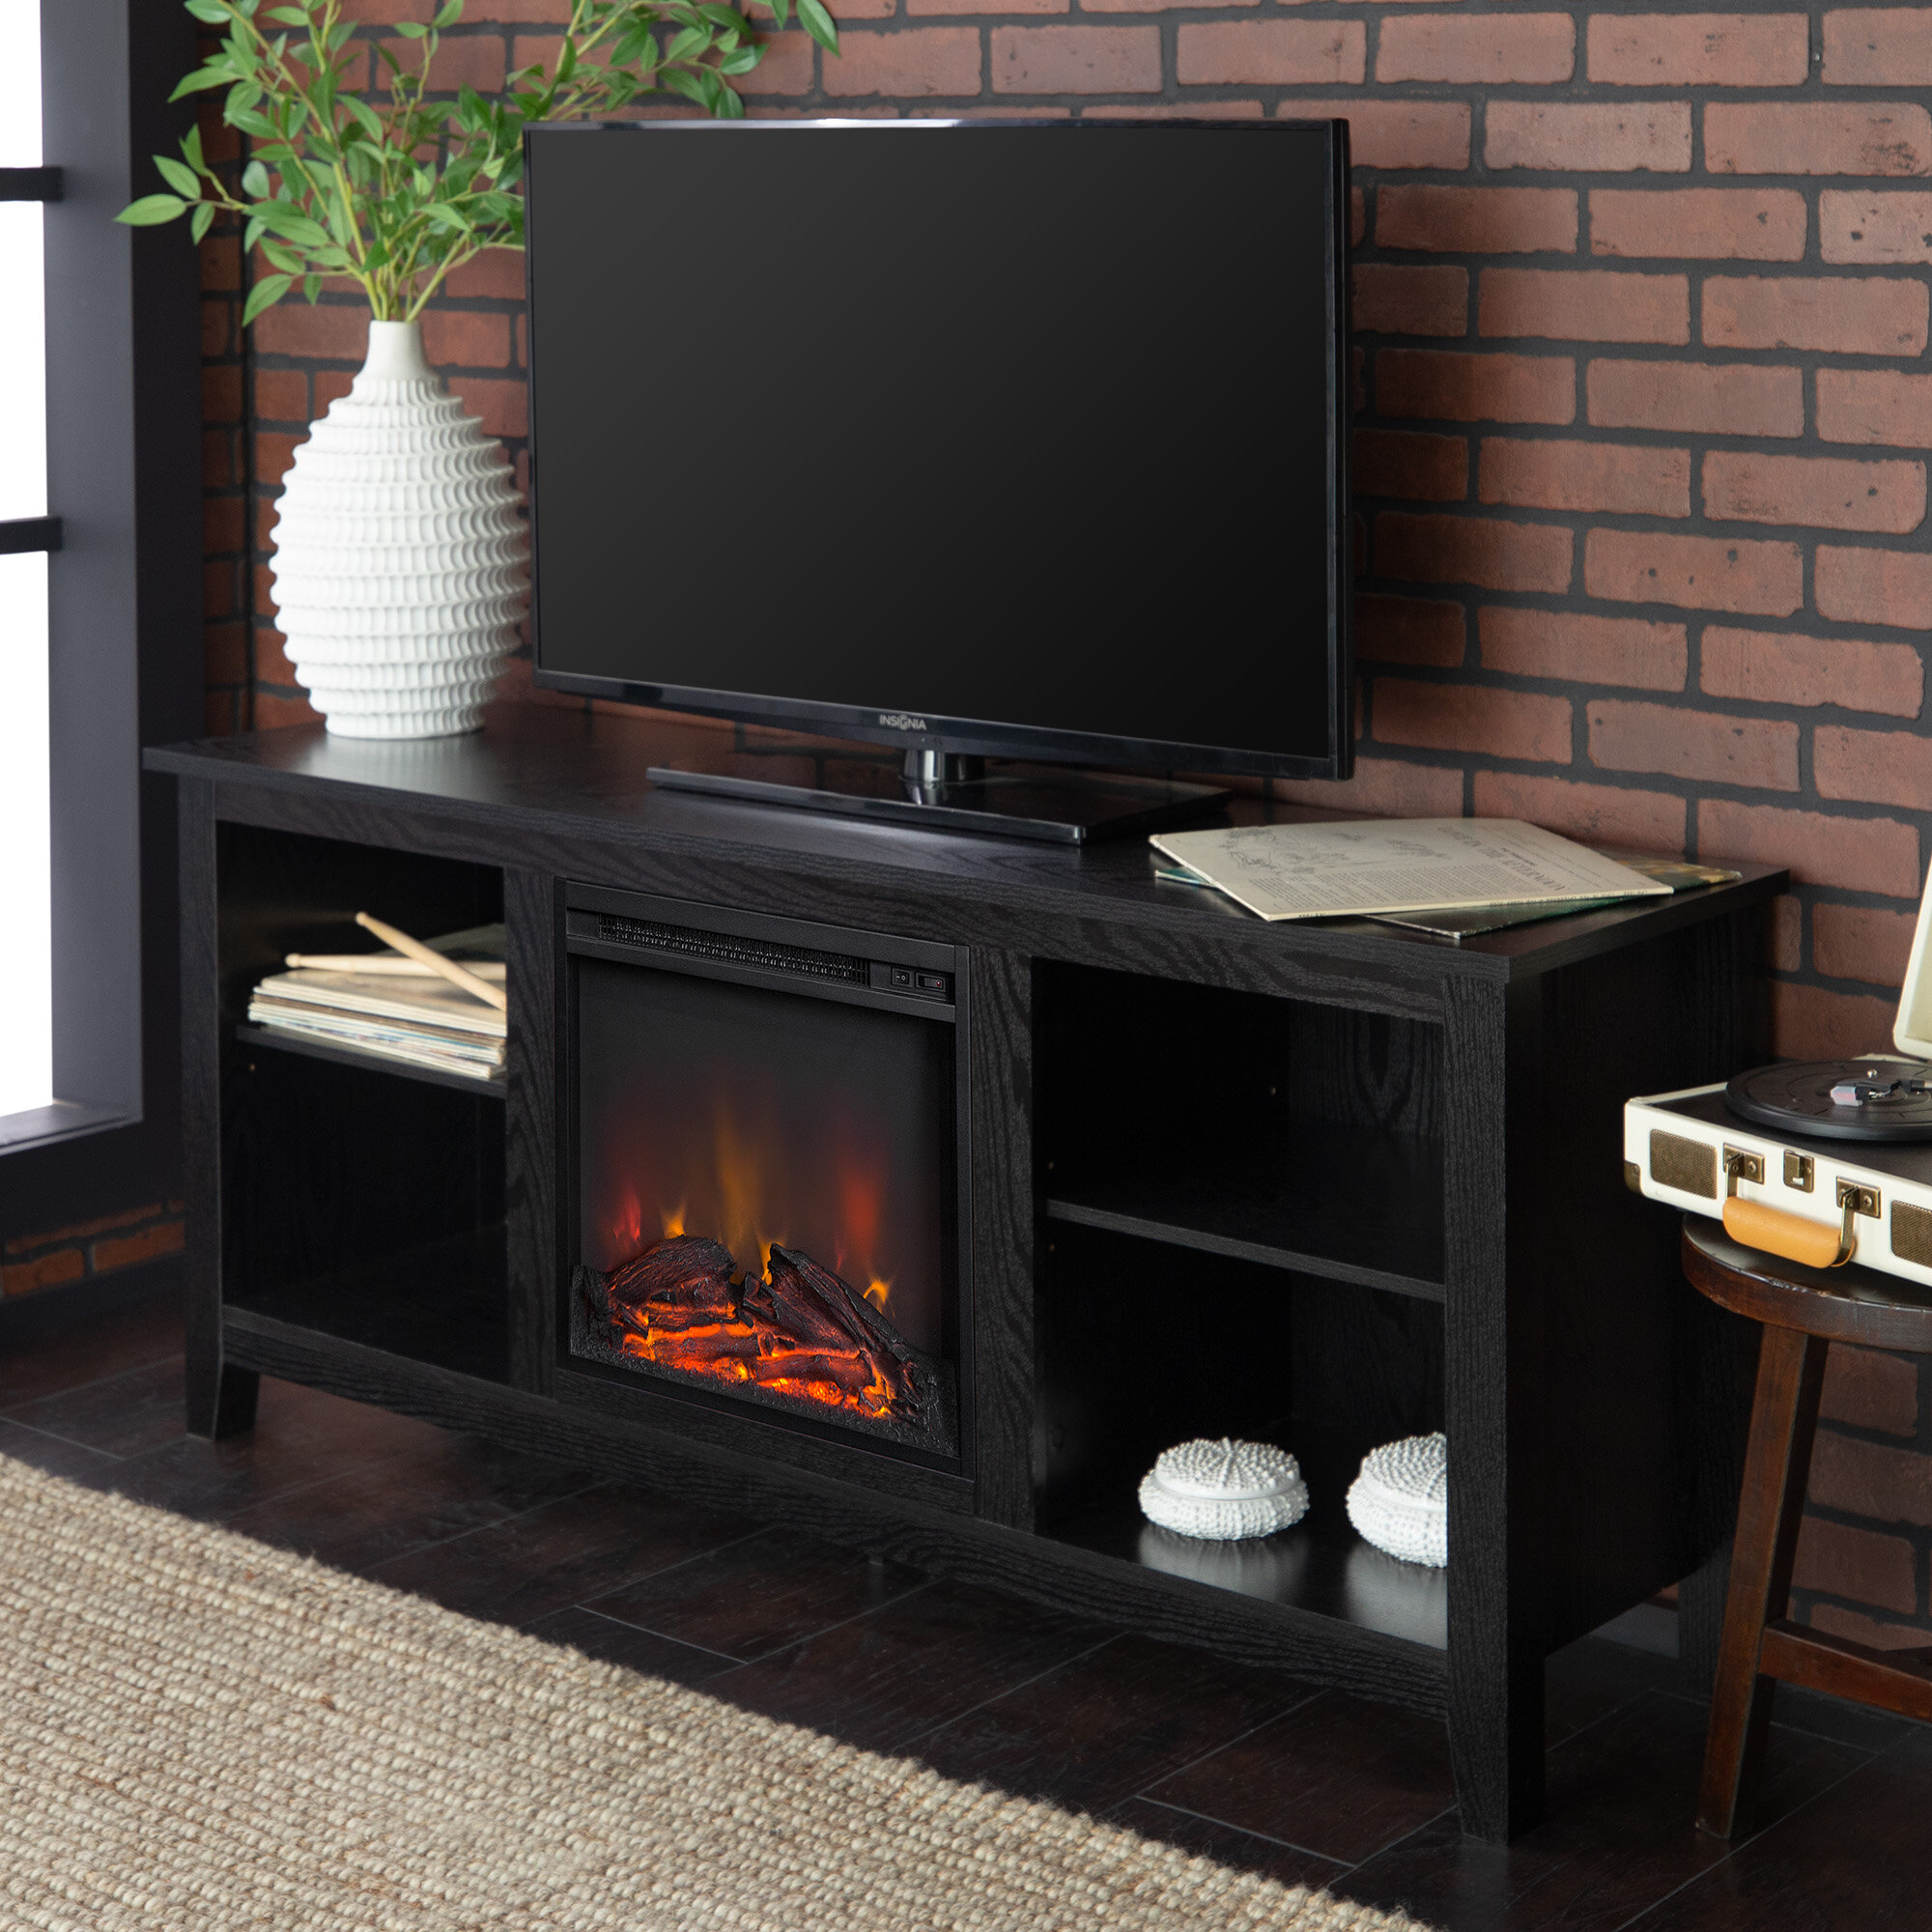 Beachcrest Home Sunbury Tv Stand For Tvs Up To 60 With Electric